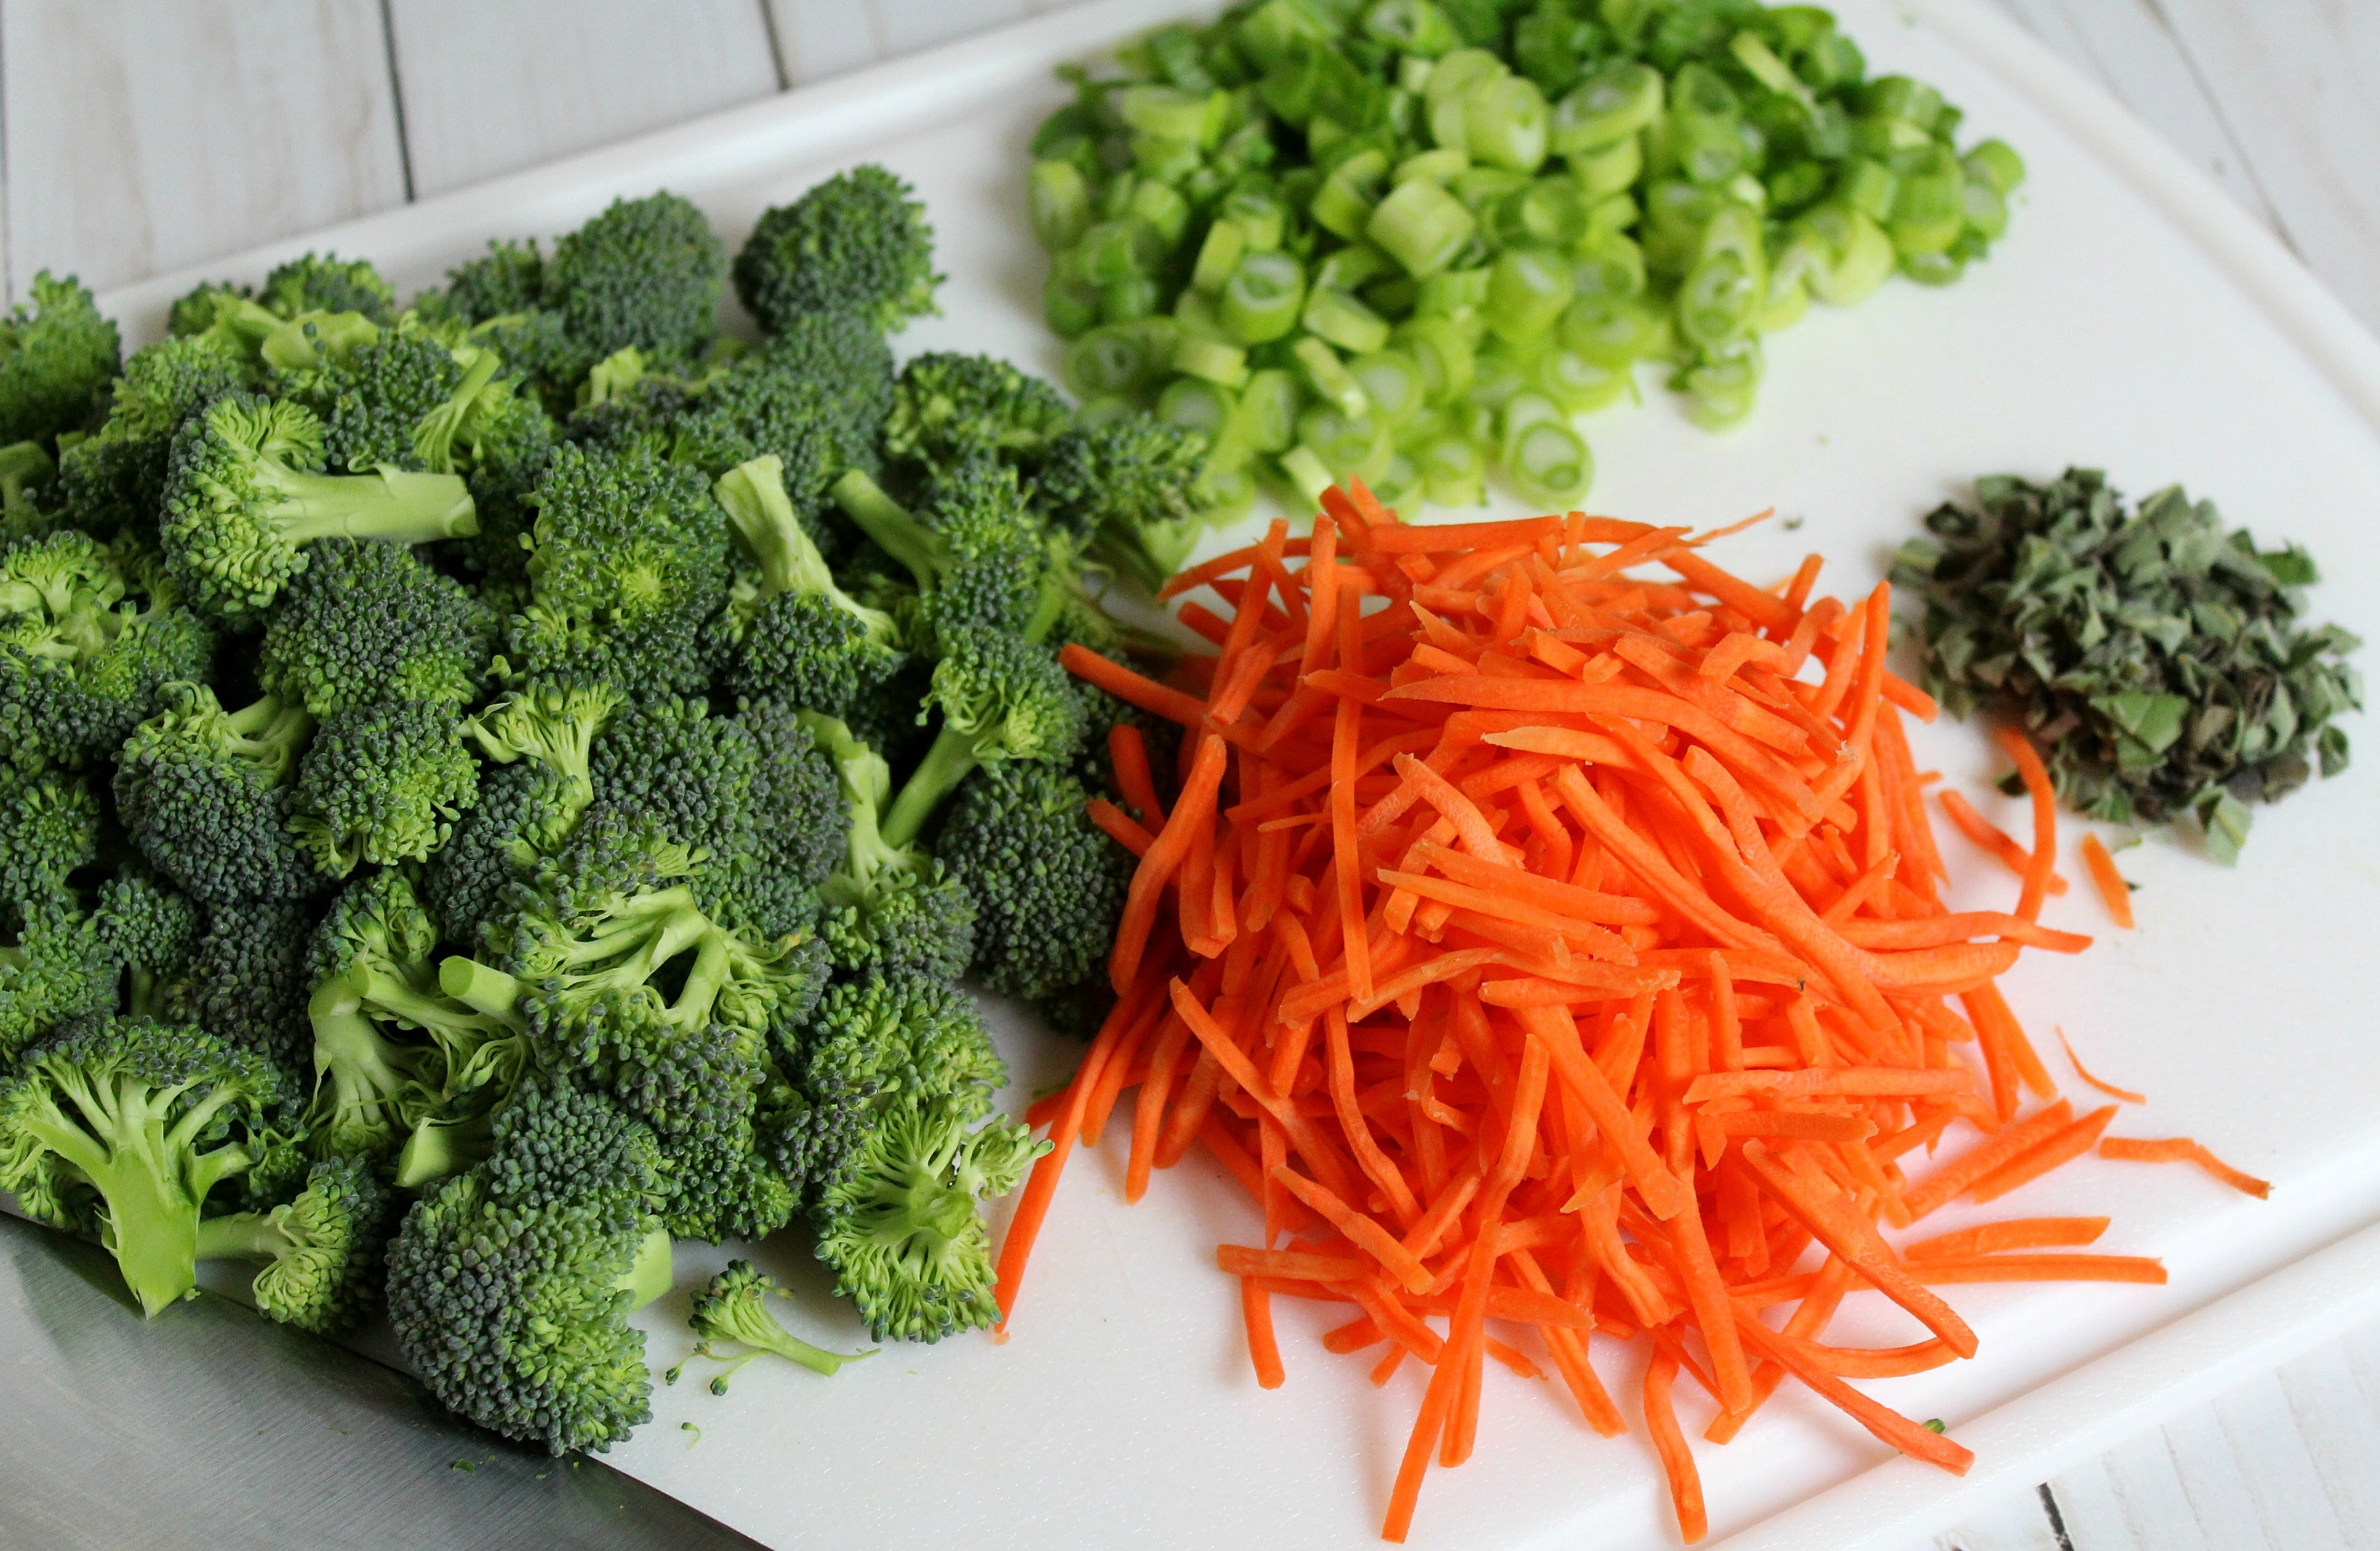 Chop green onion and sage; set aside with broccoli and carrots.